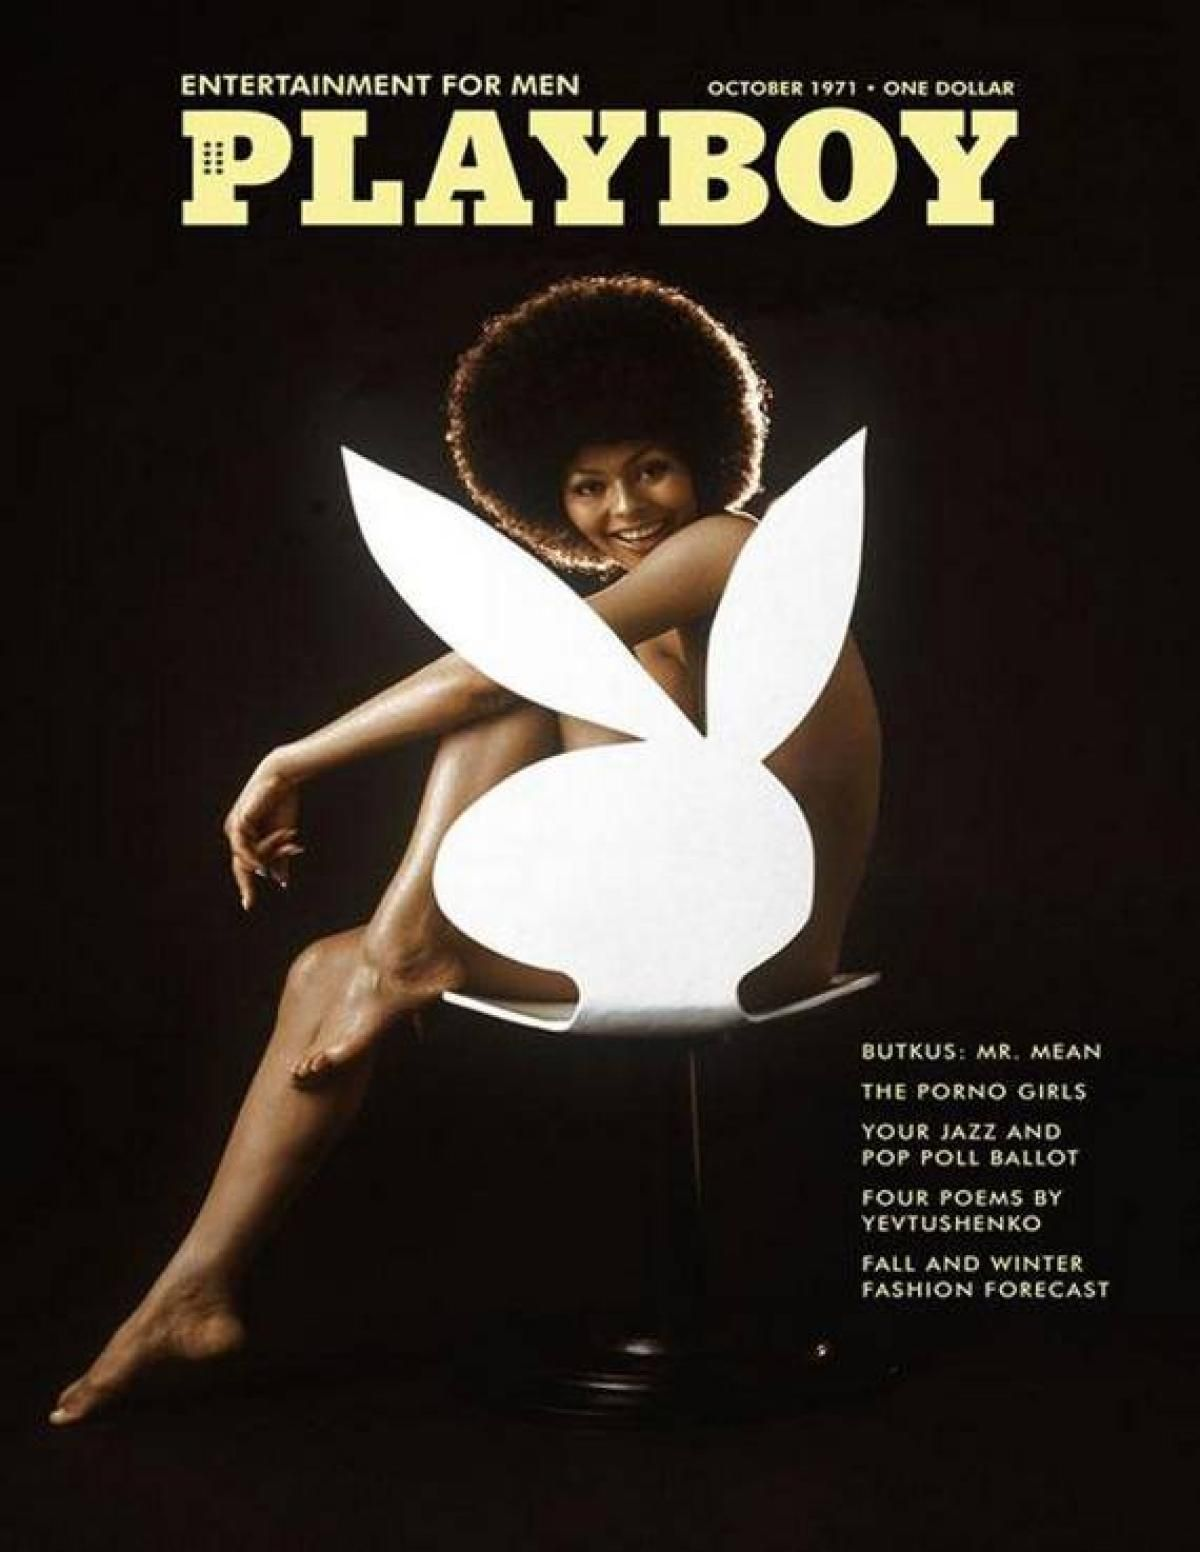 Black Porn Magazines 1971 - Darine Stern, 1971 - Photos - Iconic Playboy magazine covers